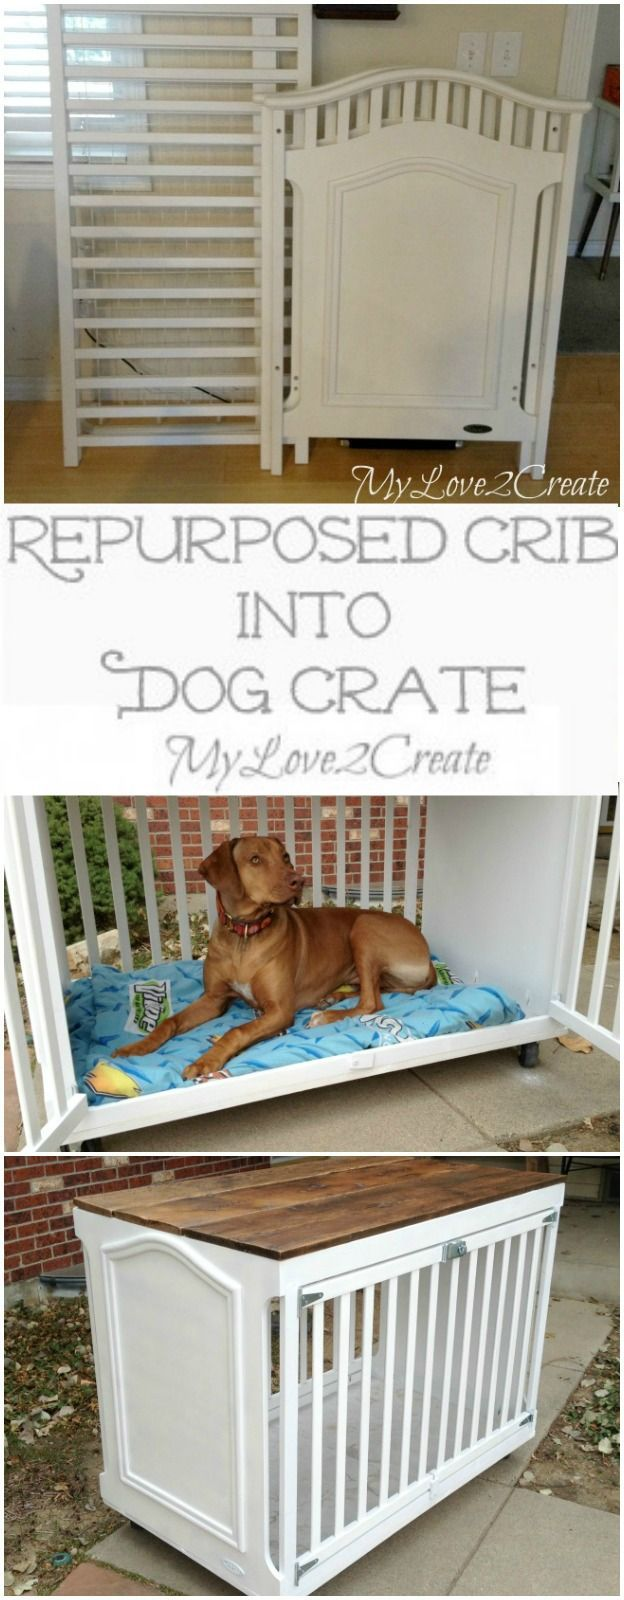 buy cheap nikes online How clever is this repurposed crib turned into a dog crate from My Love 2 Create